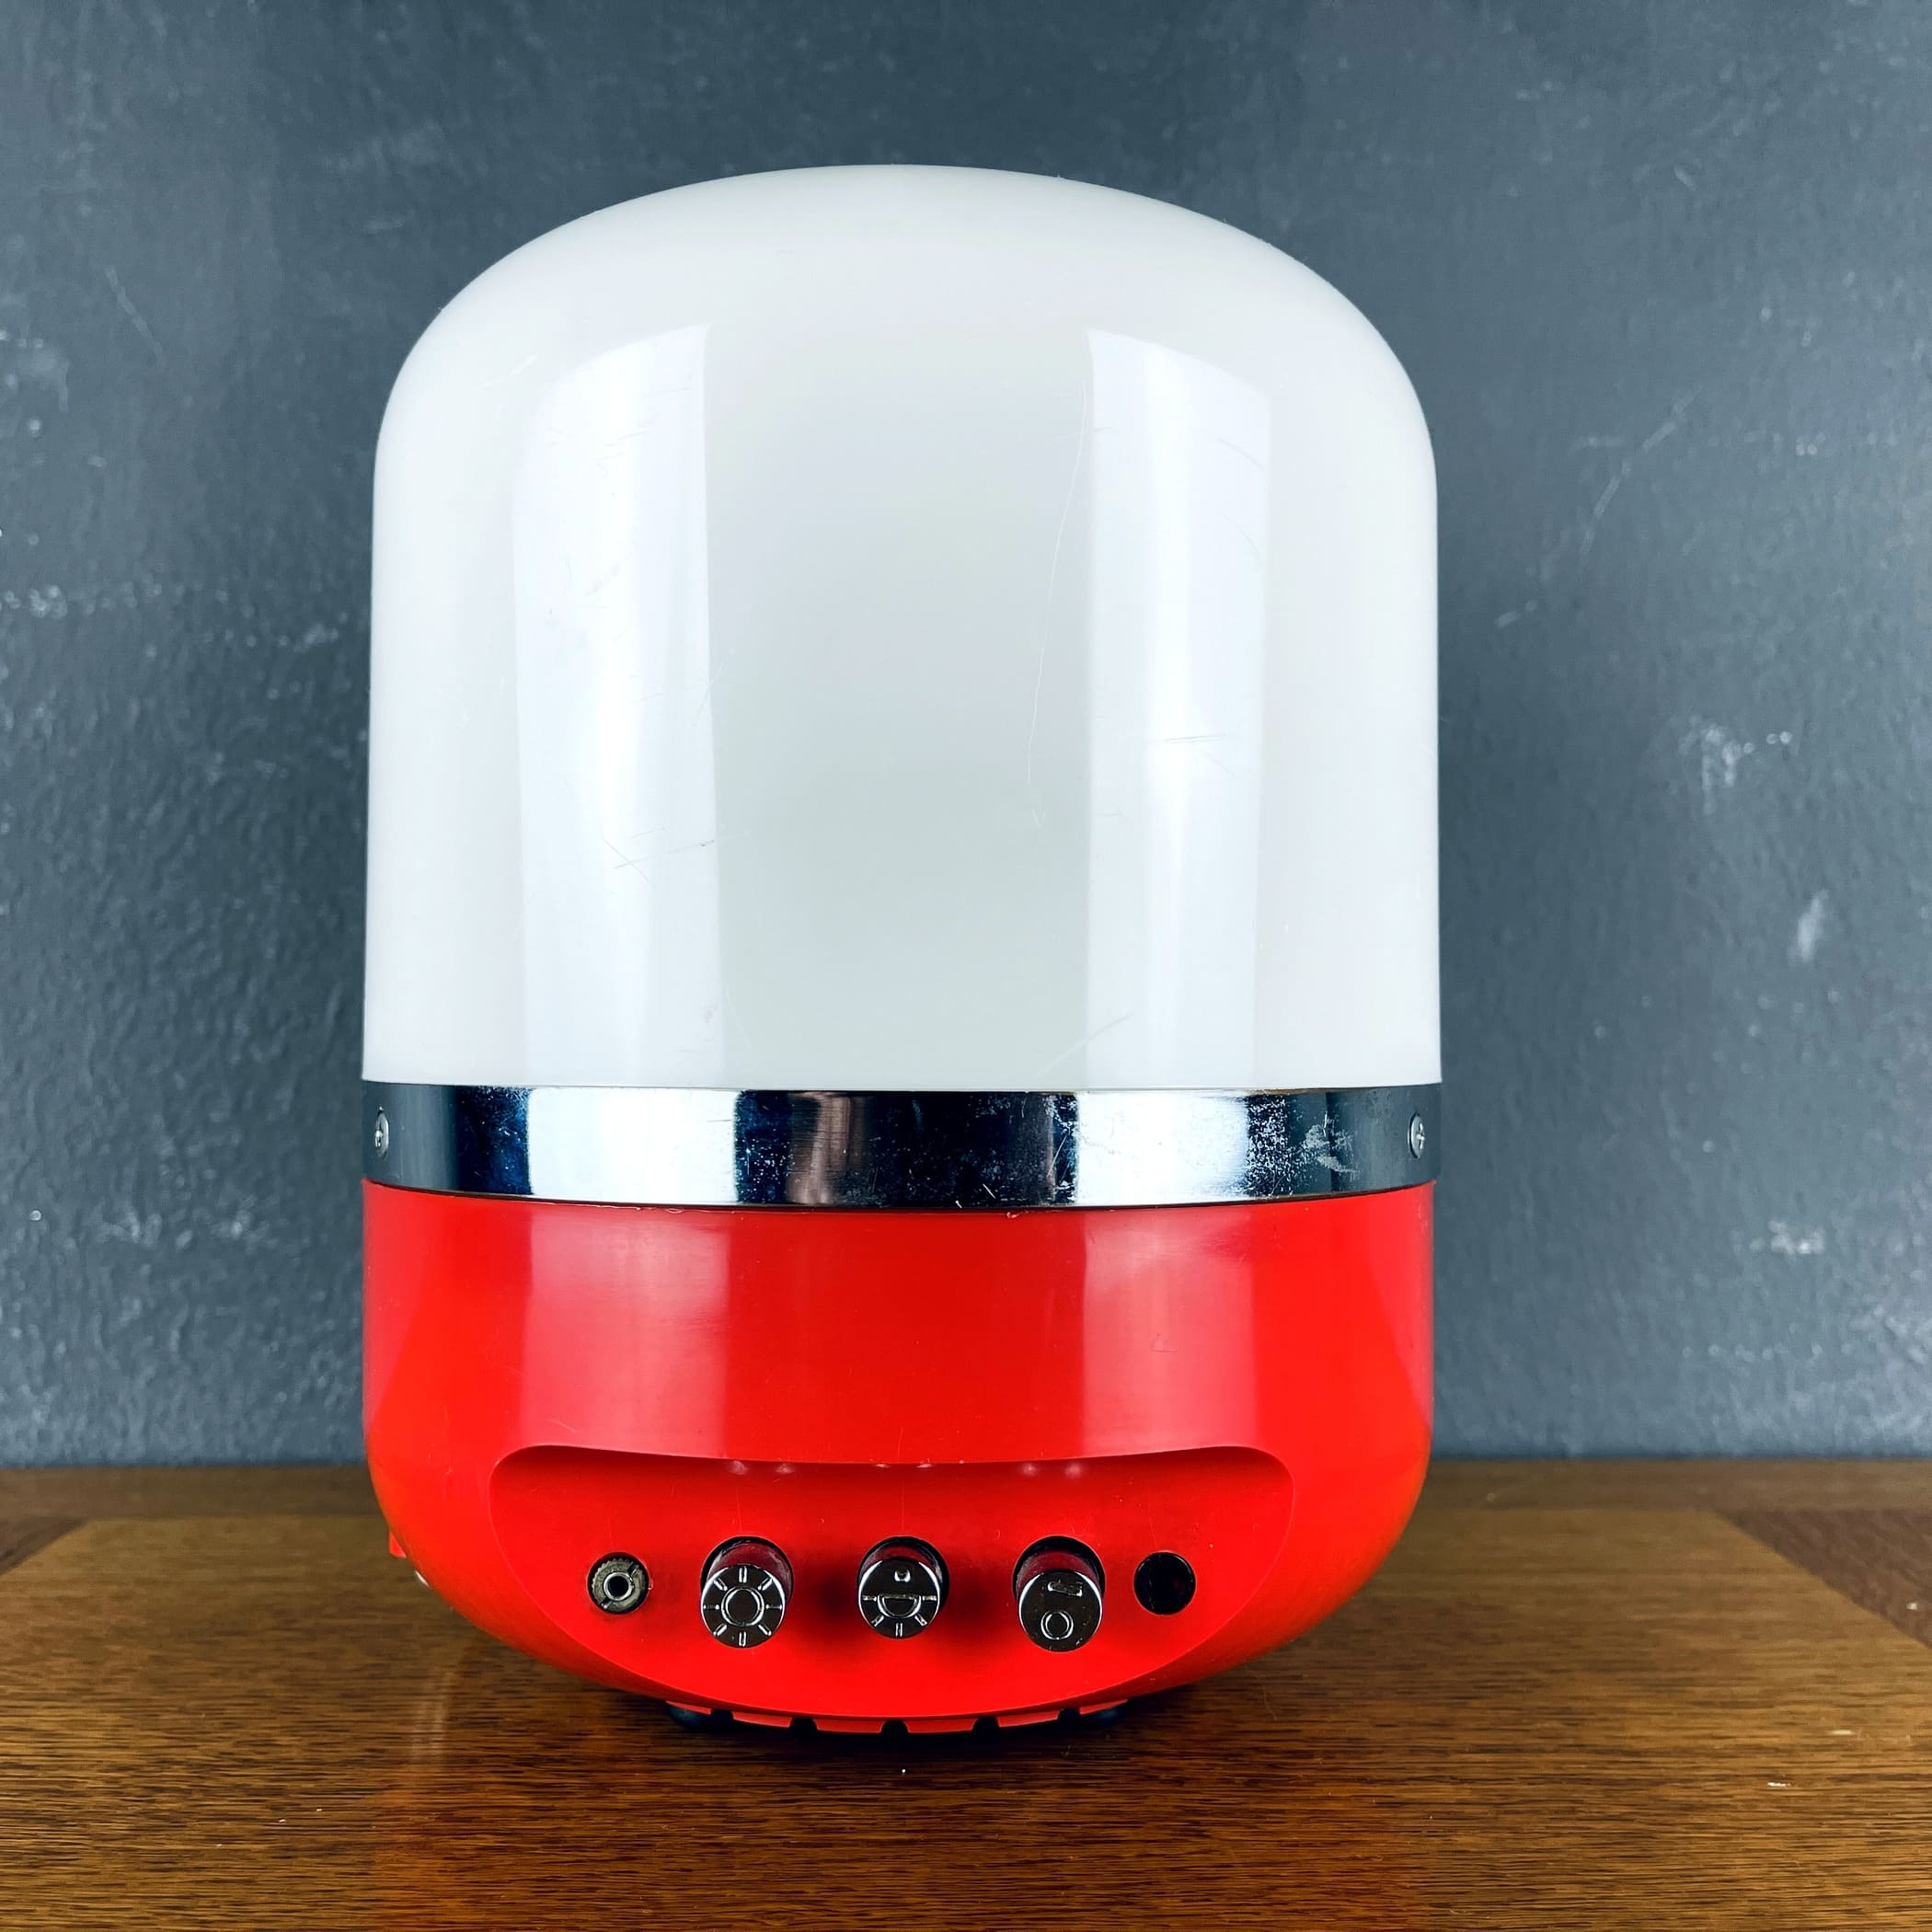 Mid-century Radio Table Lamp by Adriano Rampoldi for Europhon Milan, Italy 1970s Space Age Red White